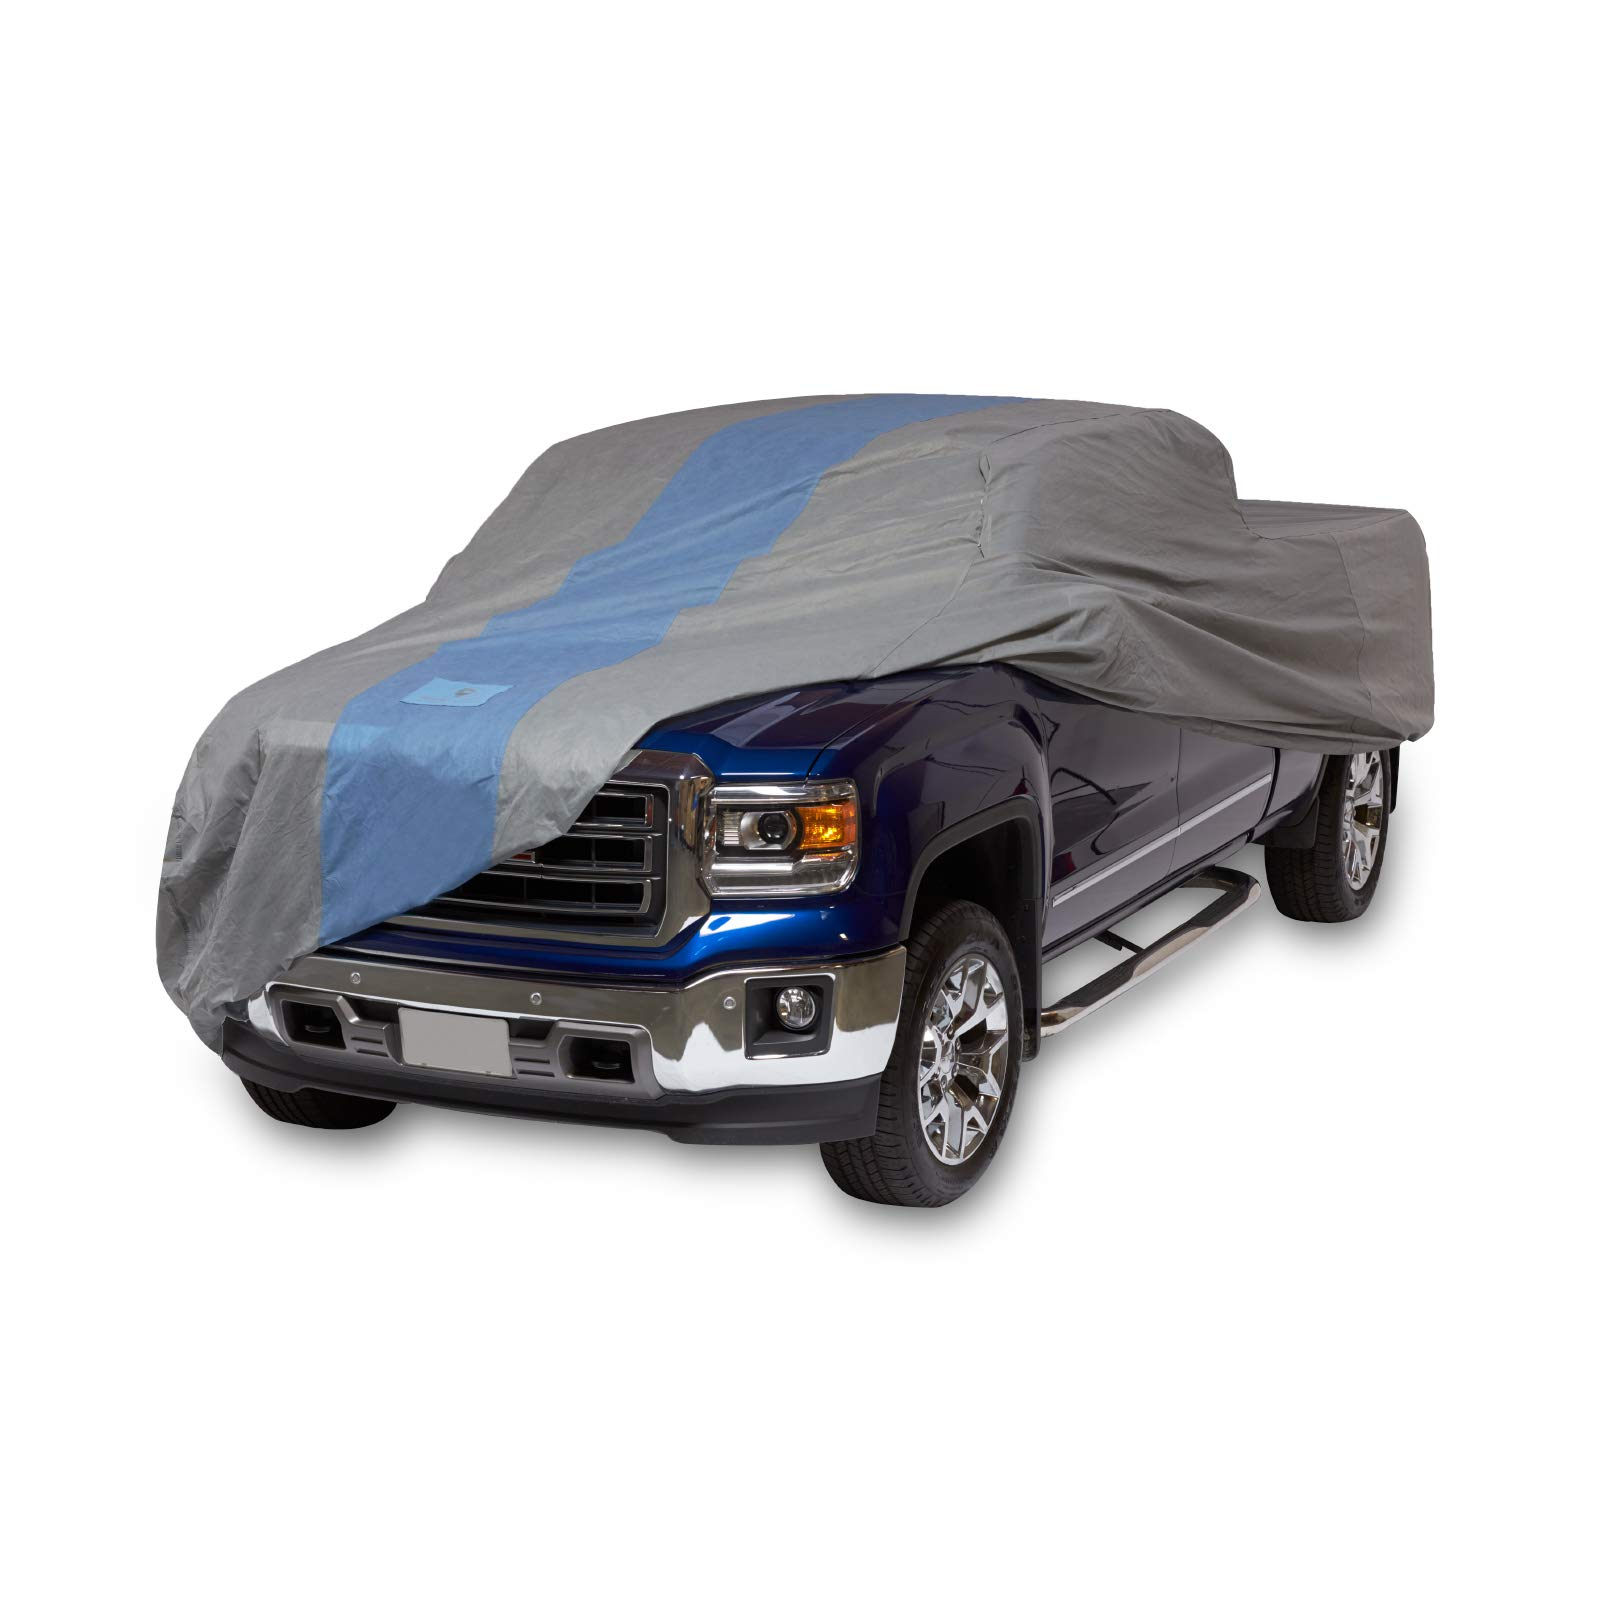 """Duck Covers Defender Pickup Truck Cover for Extended Cab Standard Bed Trucks up to 20' 9"""""""